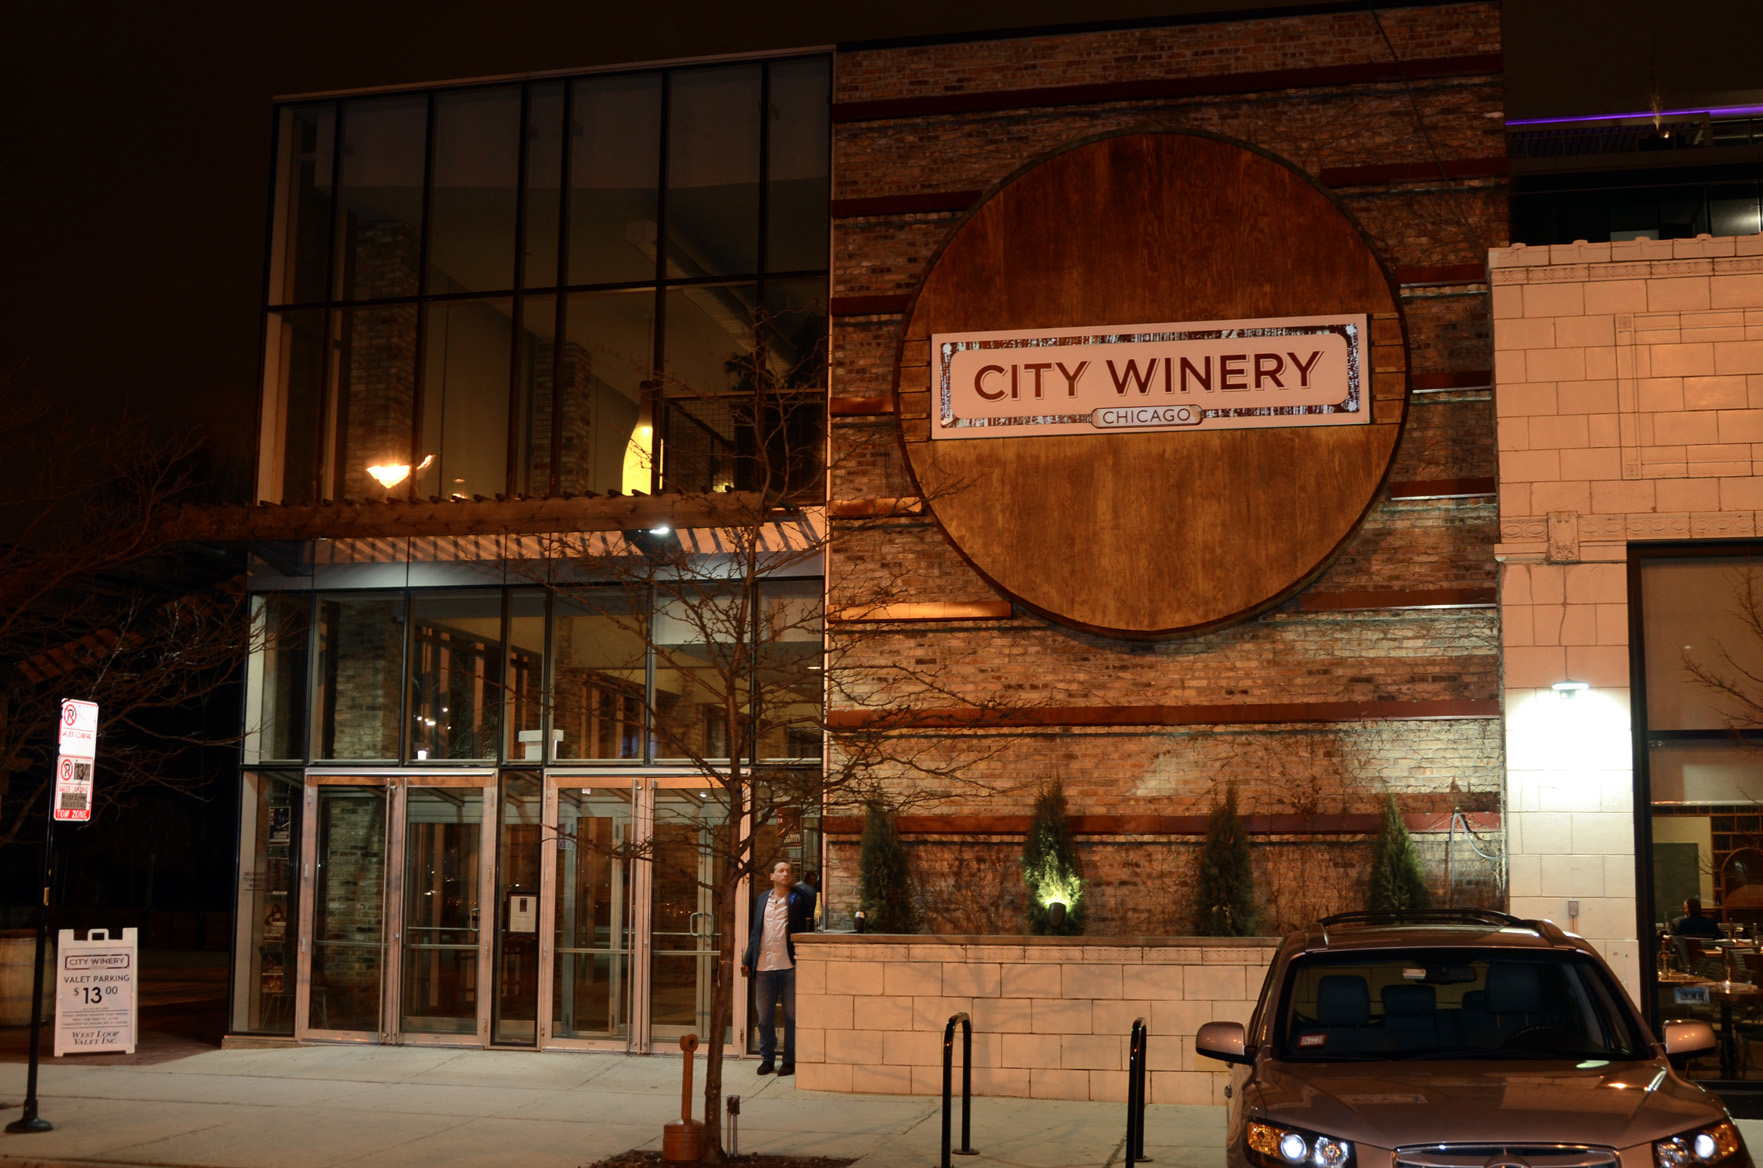 000.-Make-A-Wish-at-City-Winery-JPG.jpg